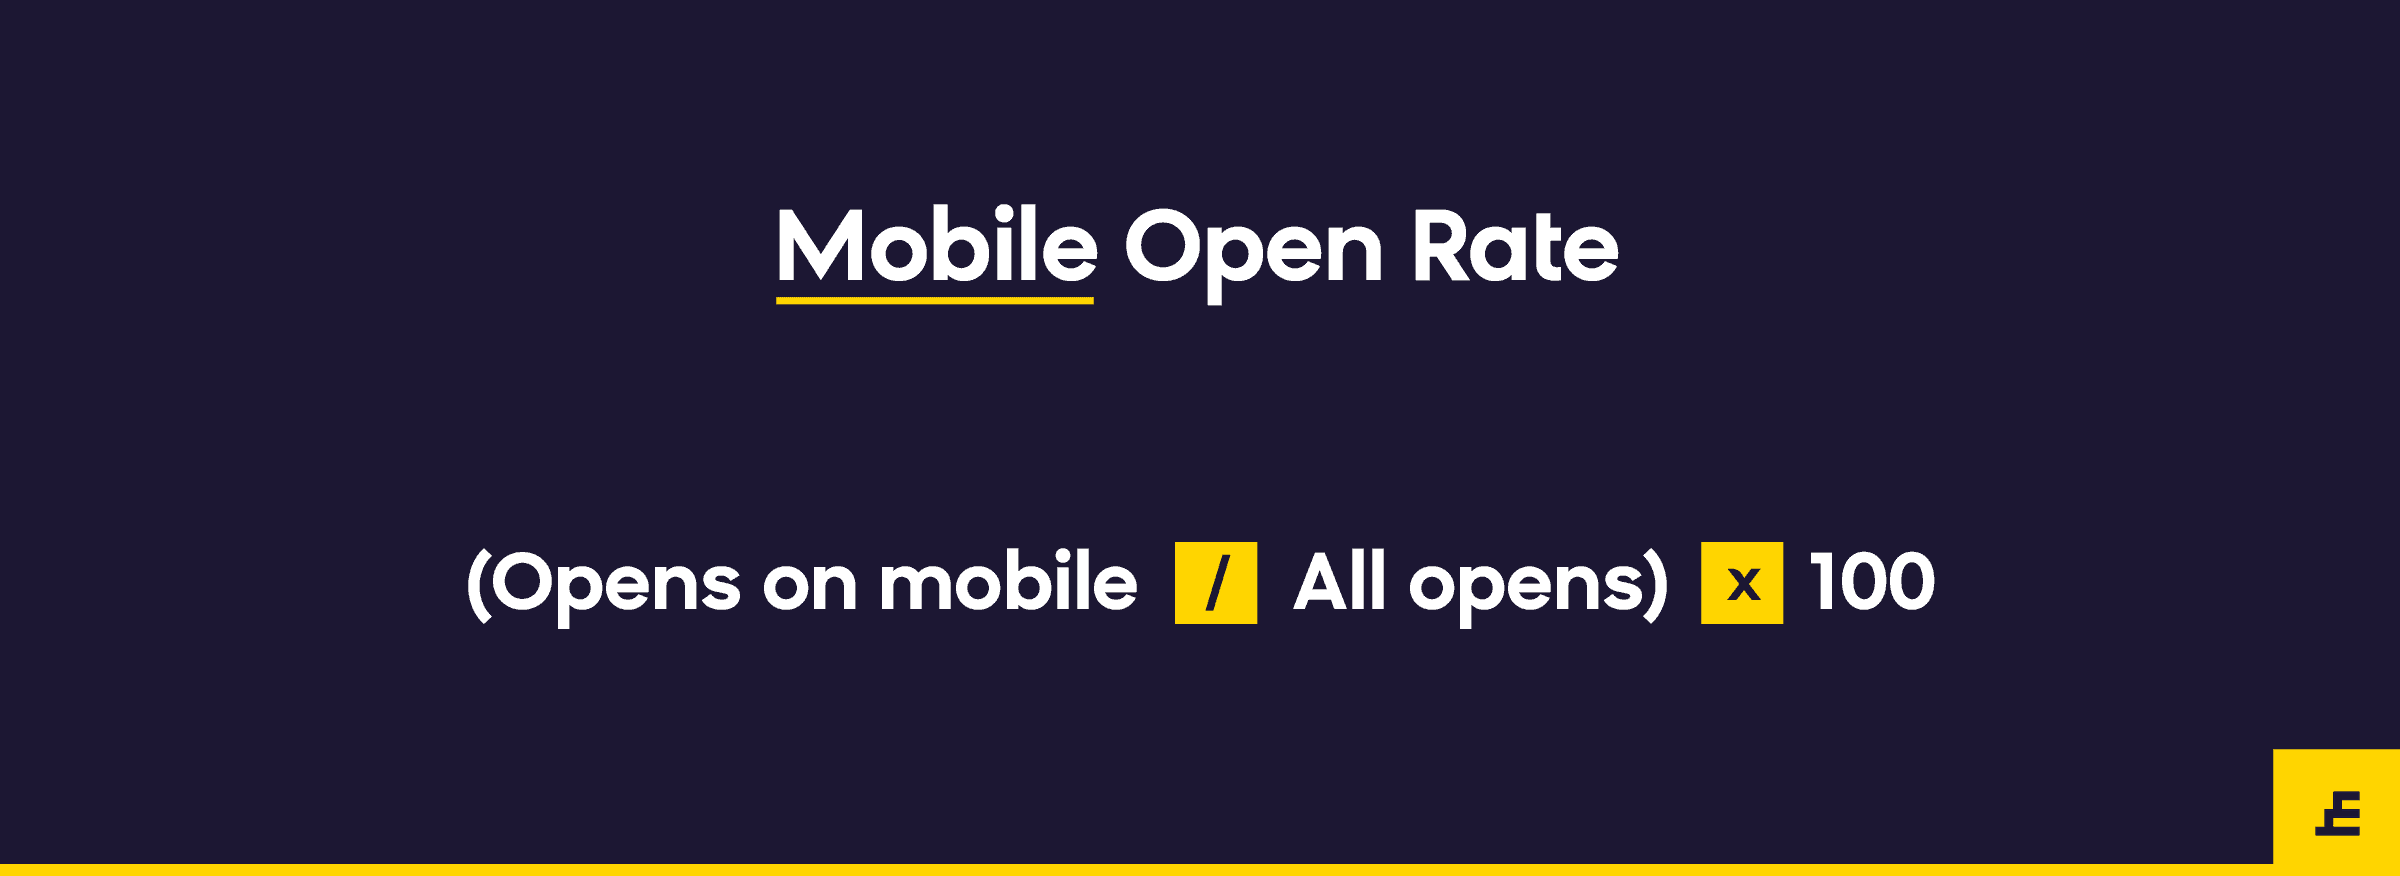 email marketing metric - mobile open rate